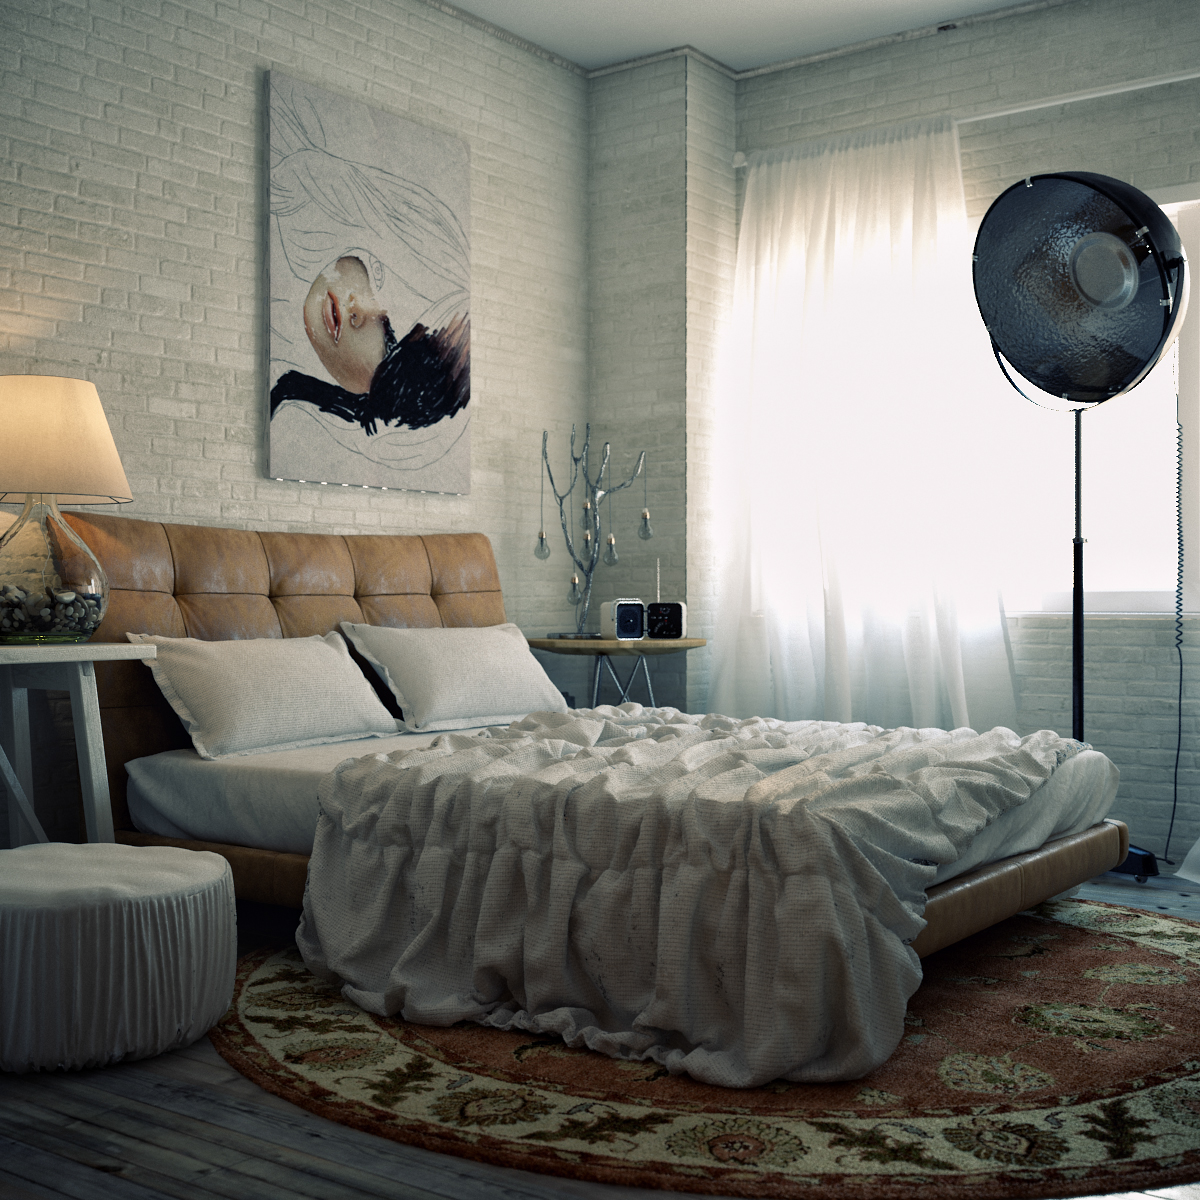 Variety of minimalist bedroom designs look so trendy with wooden accent decor roohome - Minimalist bedroom design ...